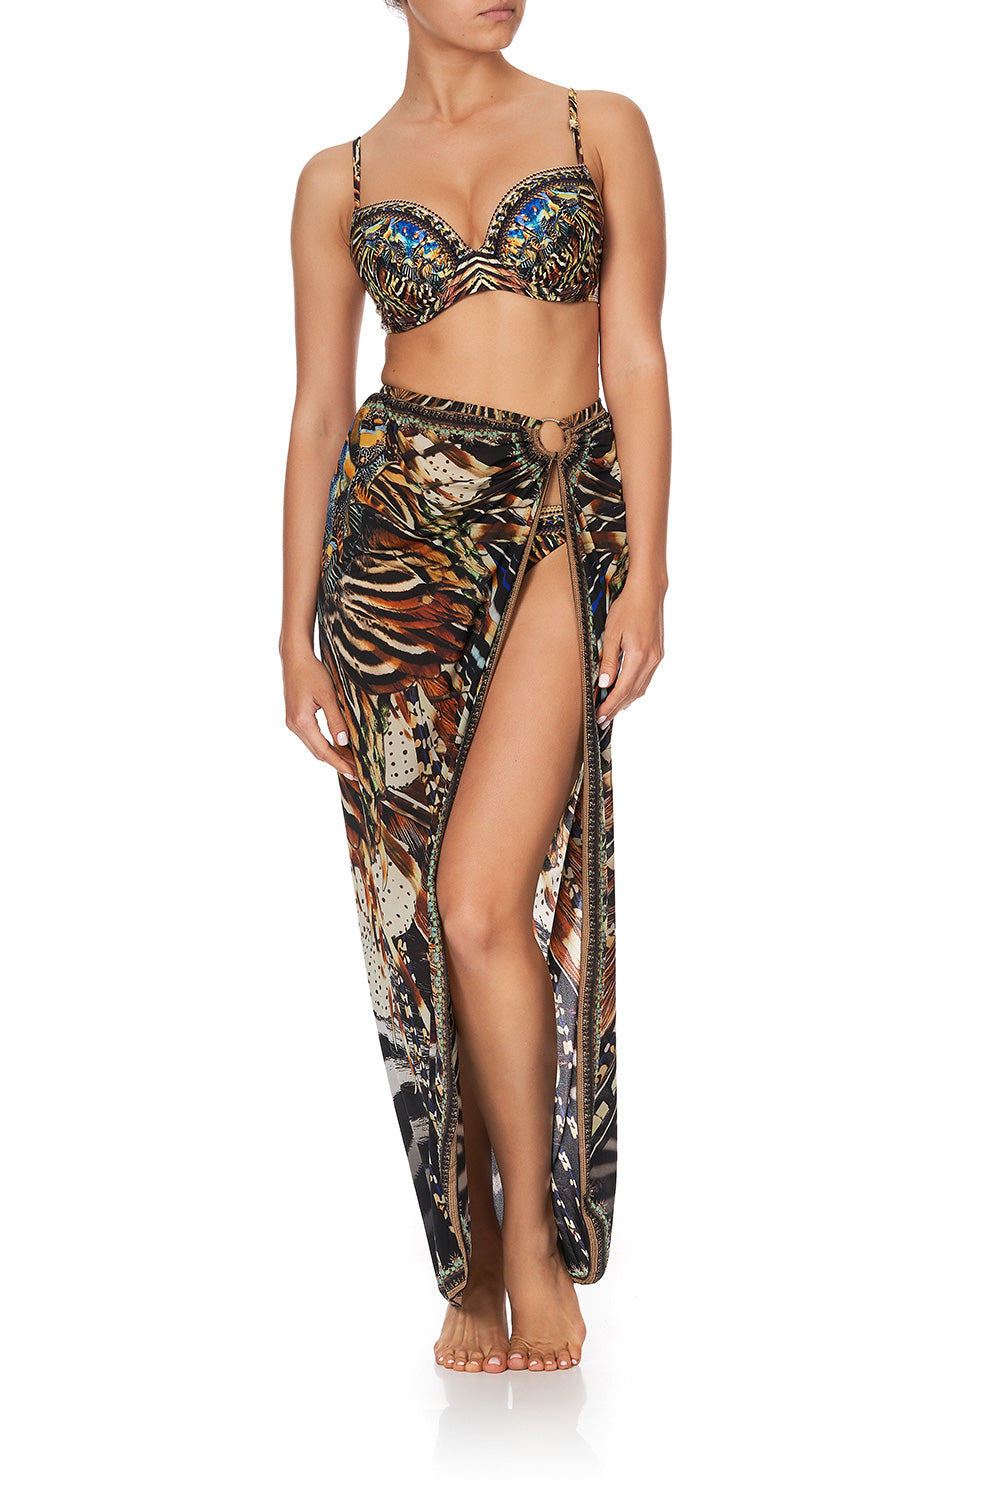 RING TRIM LONG SARONG LOST PARADISE